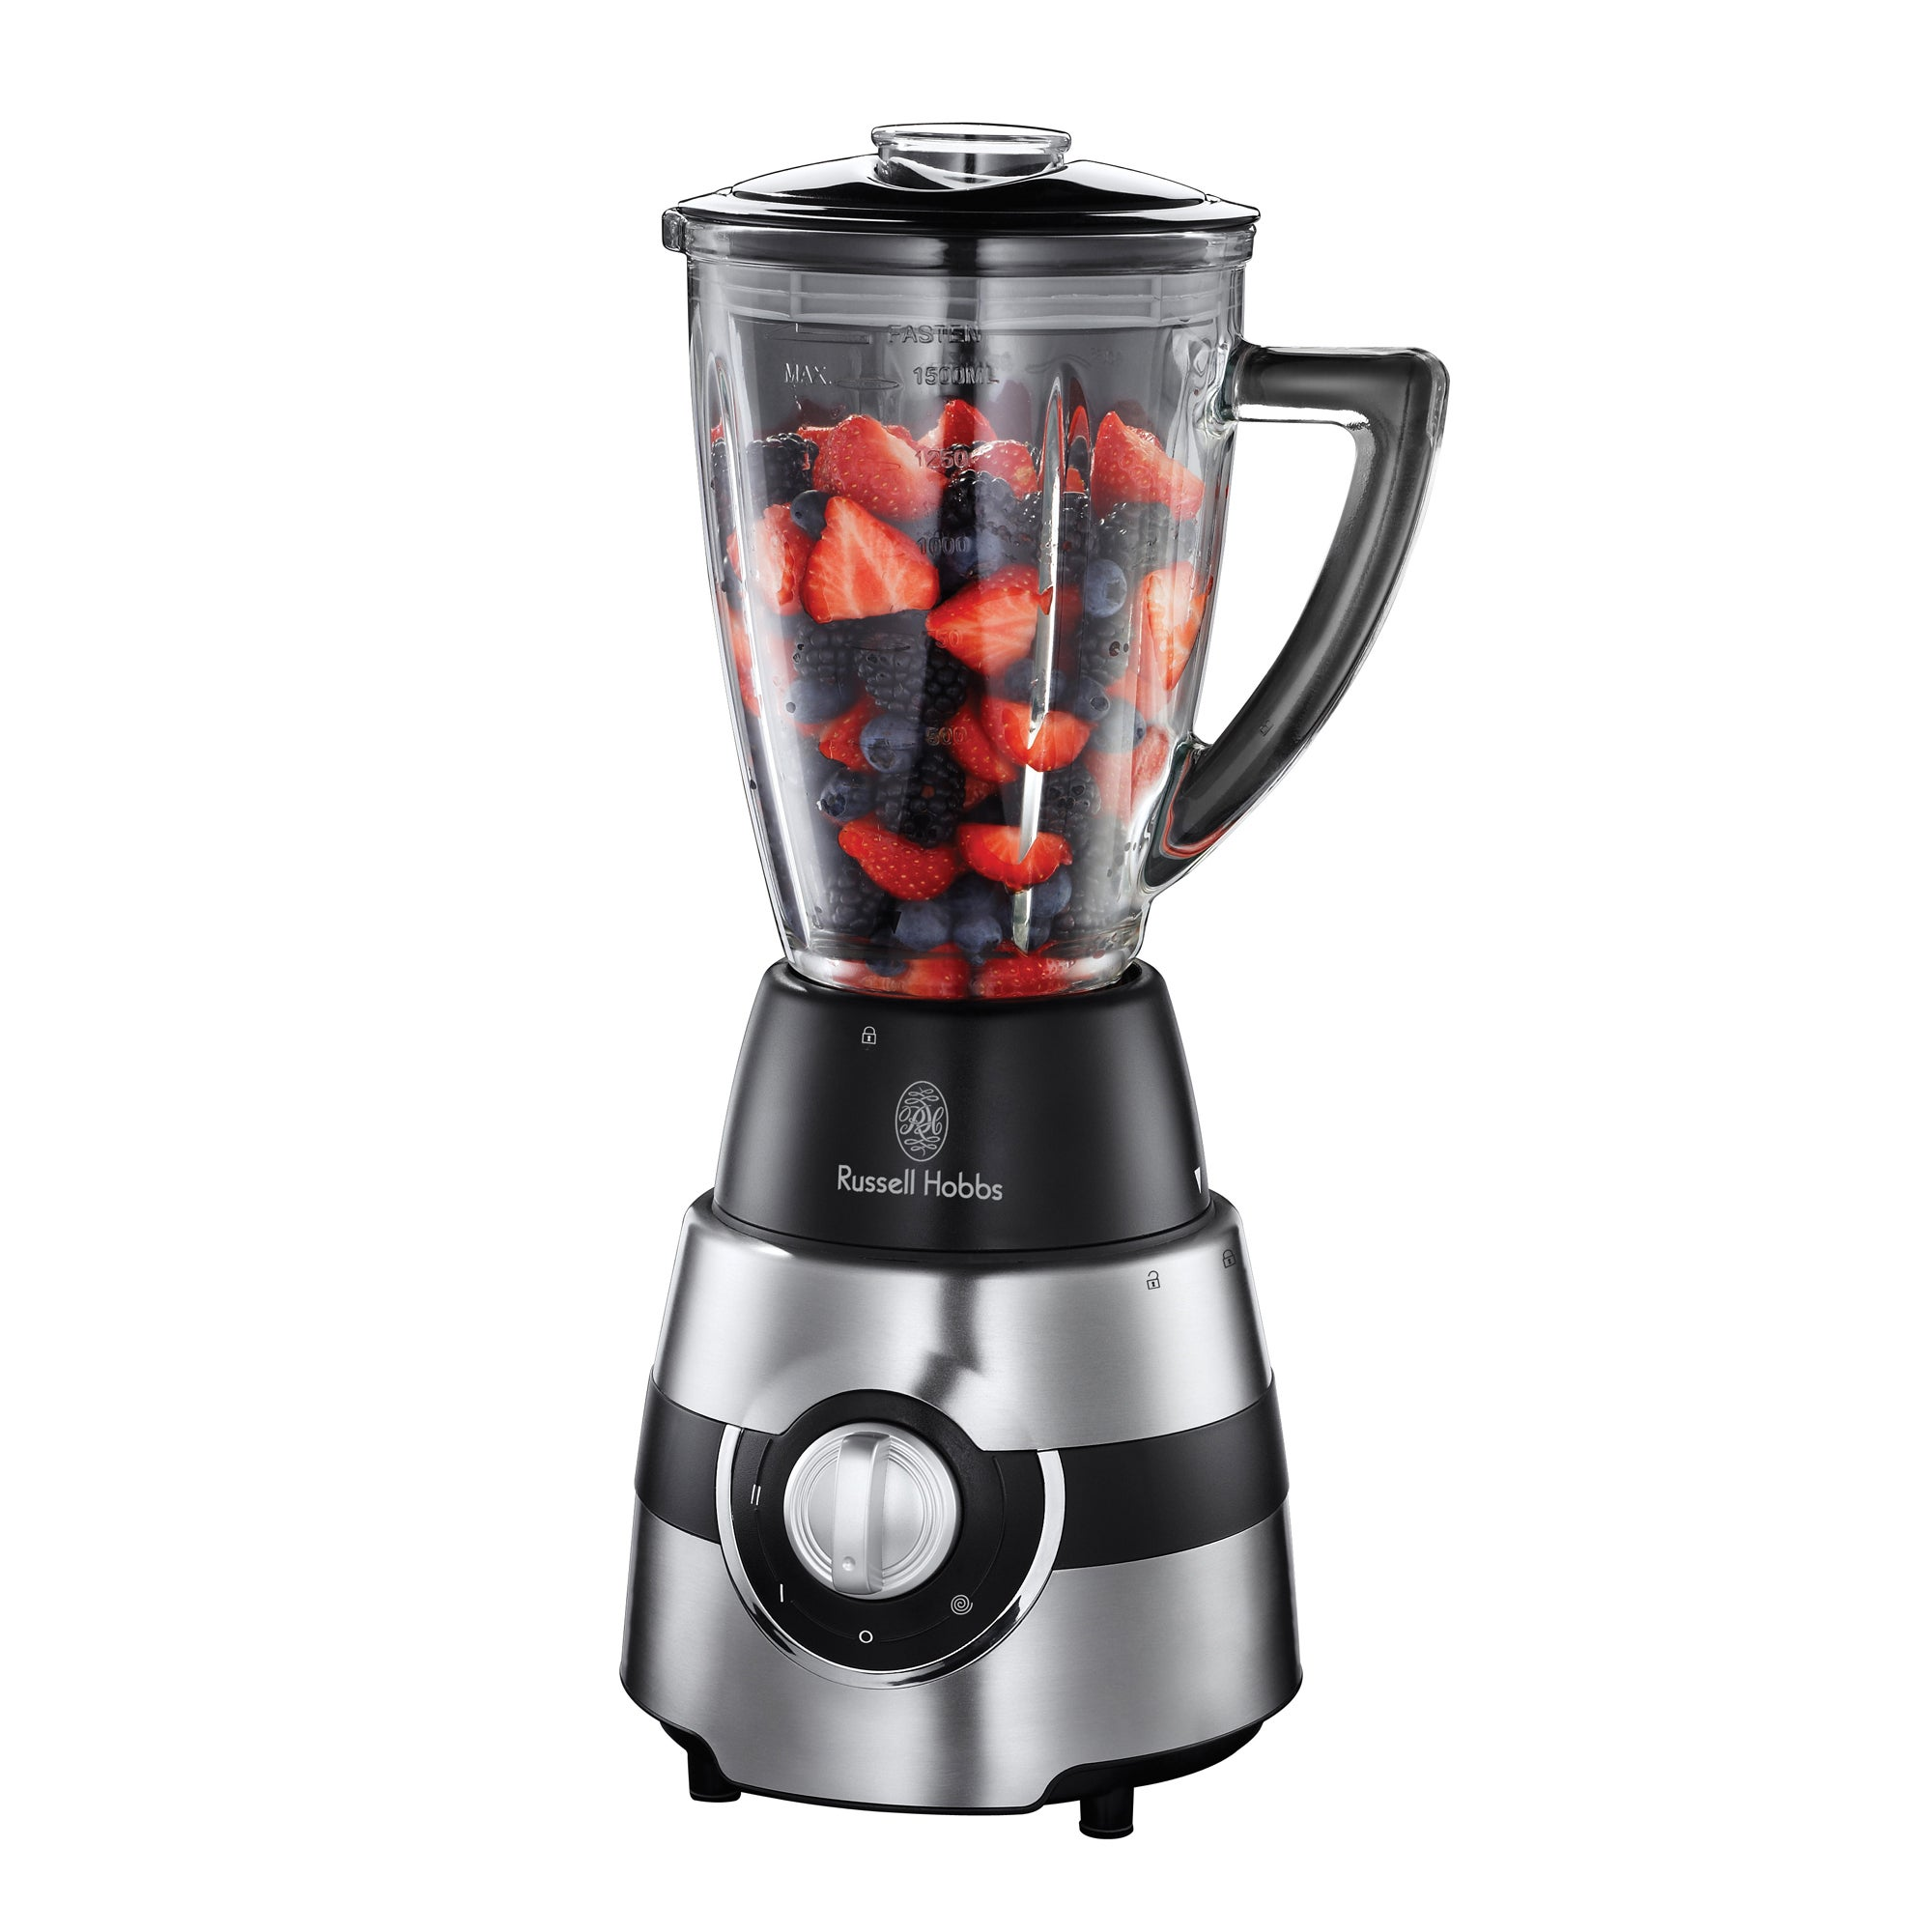 Russell Hobbs 18087 Black Glass Blender